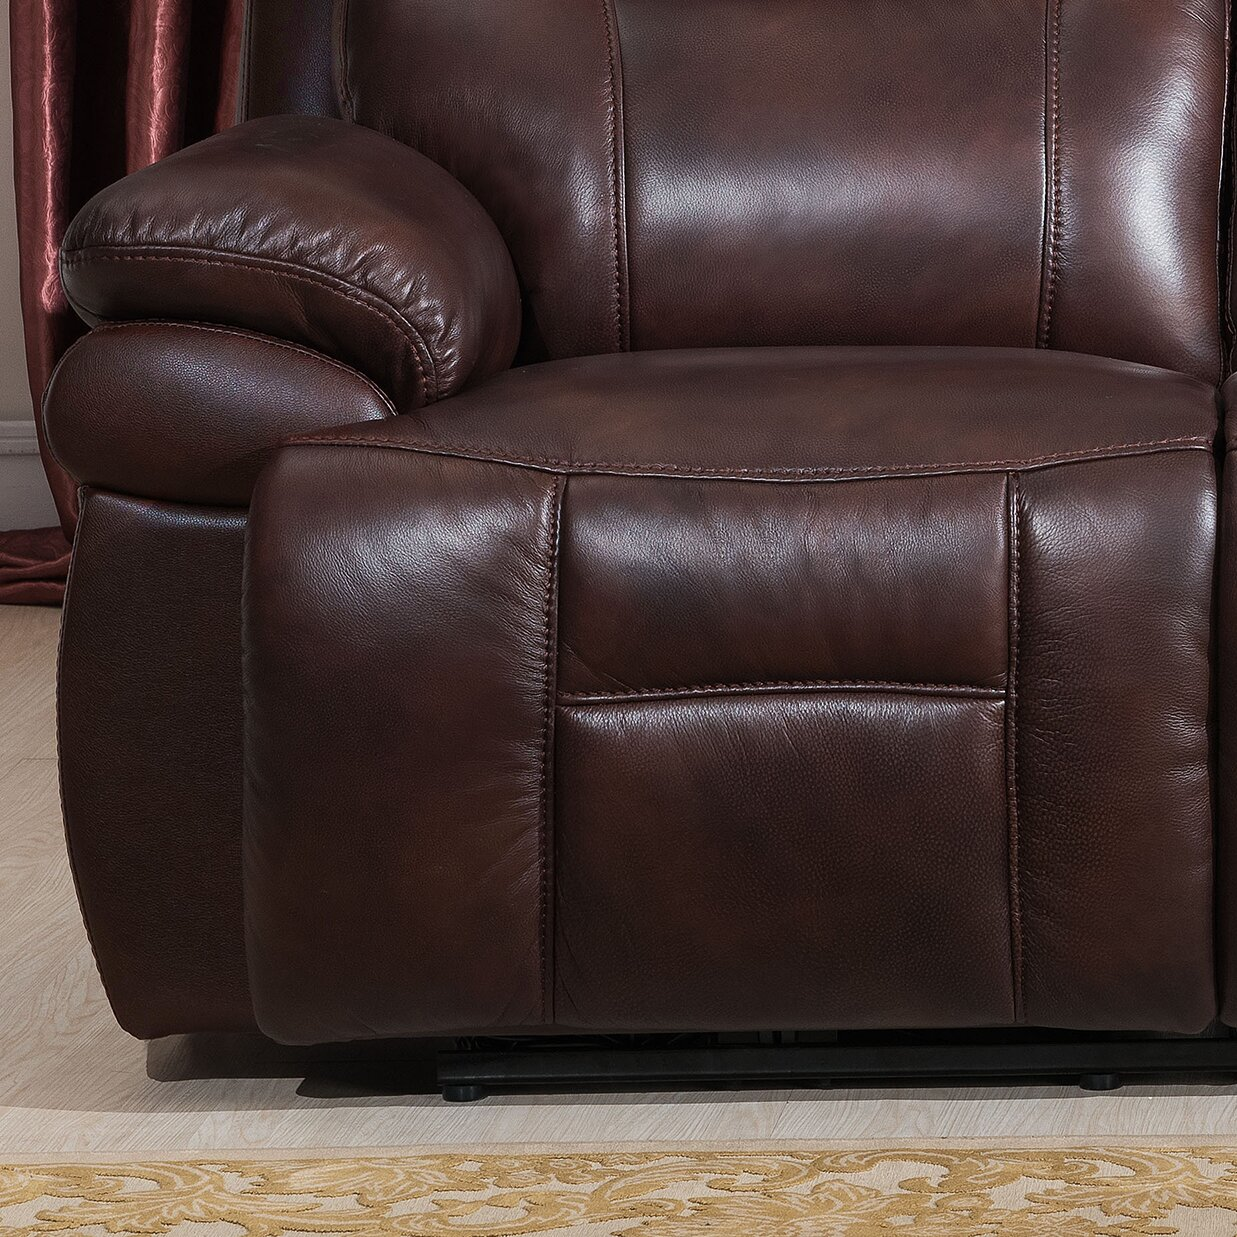 Amax sanford 2 piece leather power reclining living room set with power headrests and drop down 2 piece leather living room set